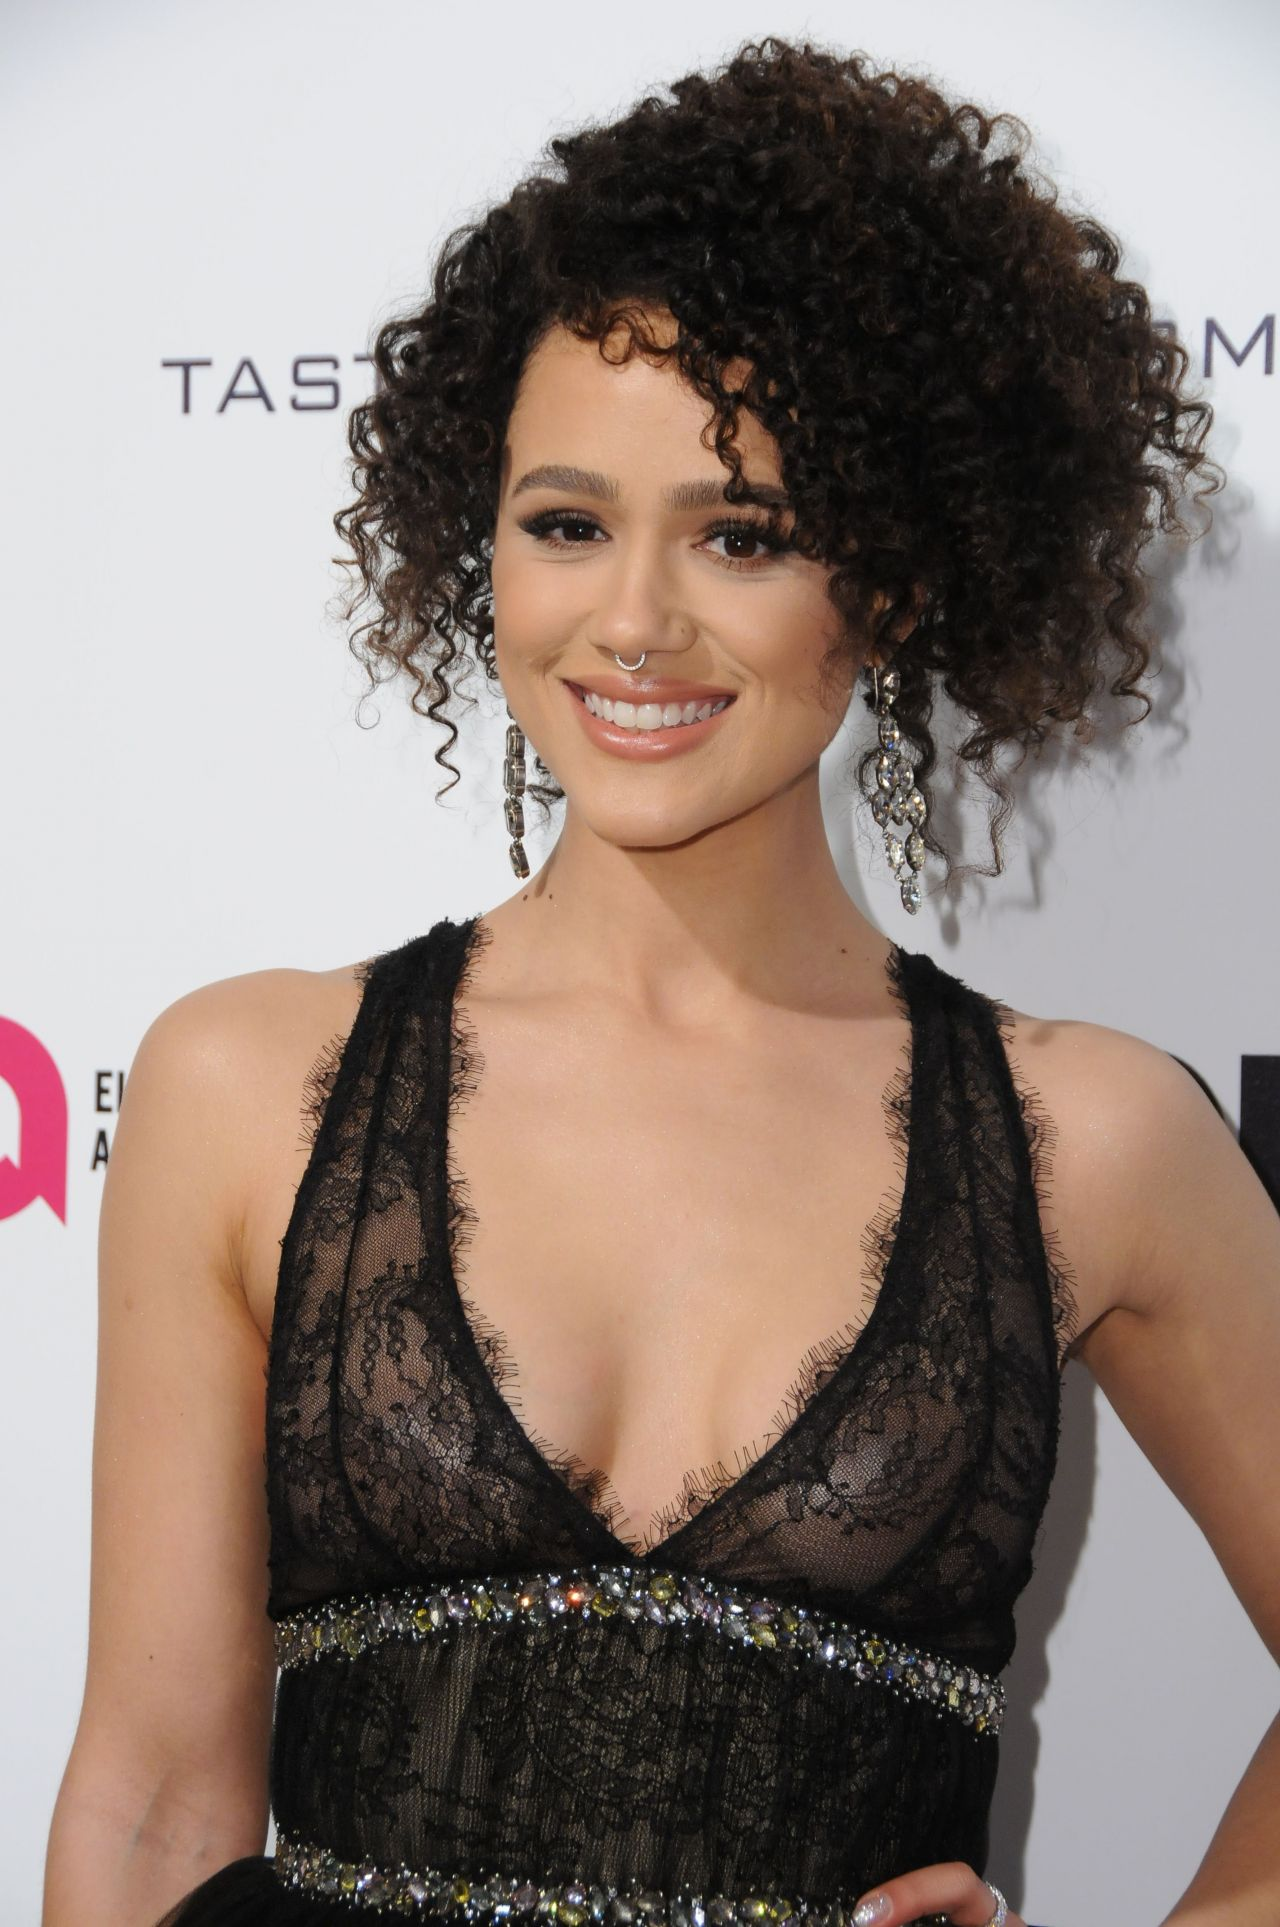 Nathalie Emmanuel Flashes Nipples At Oscar Party - Geeks -6664